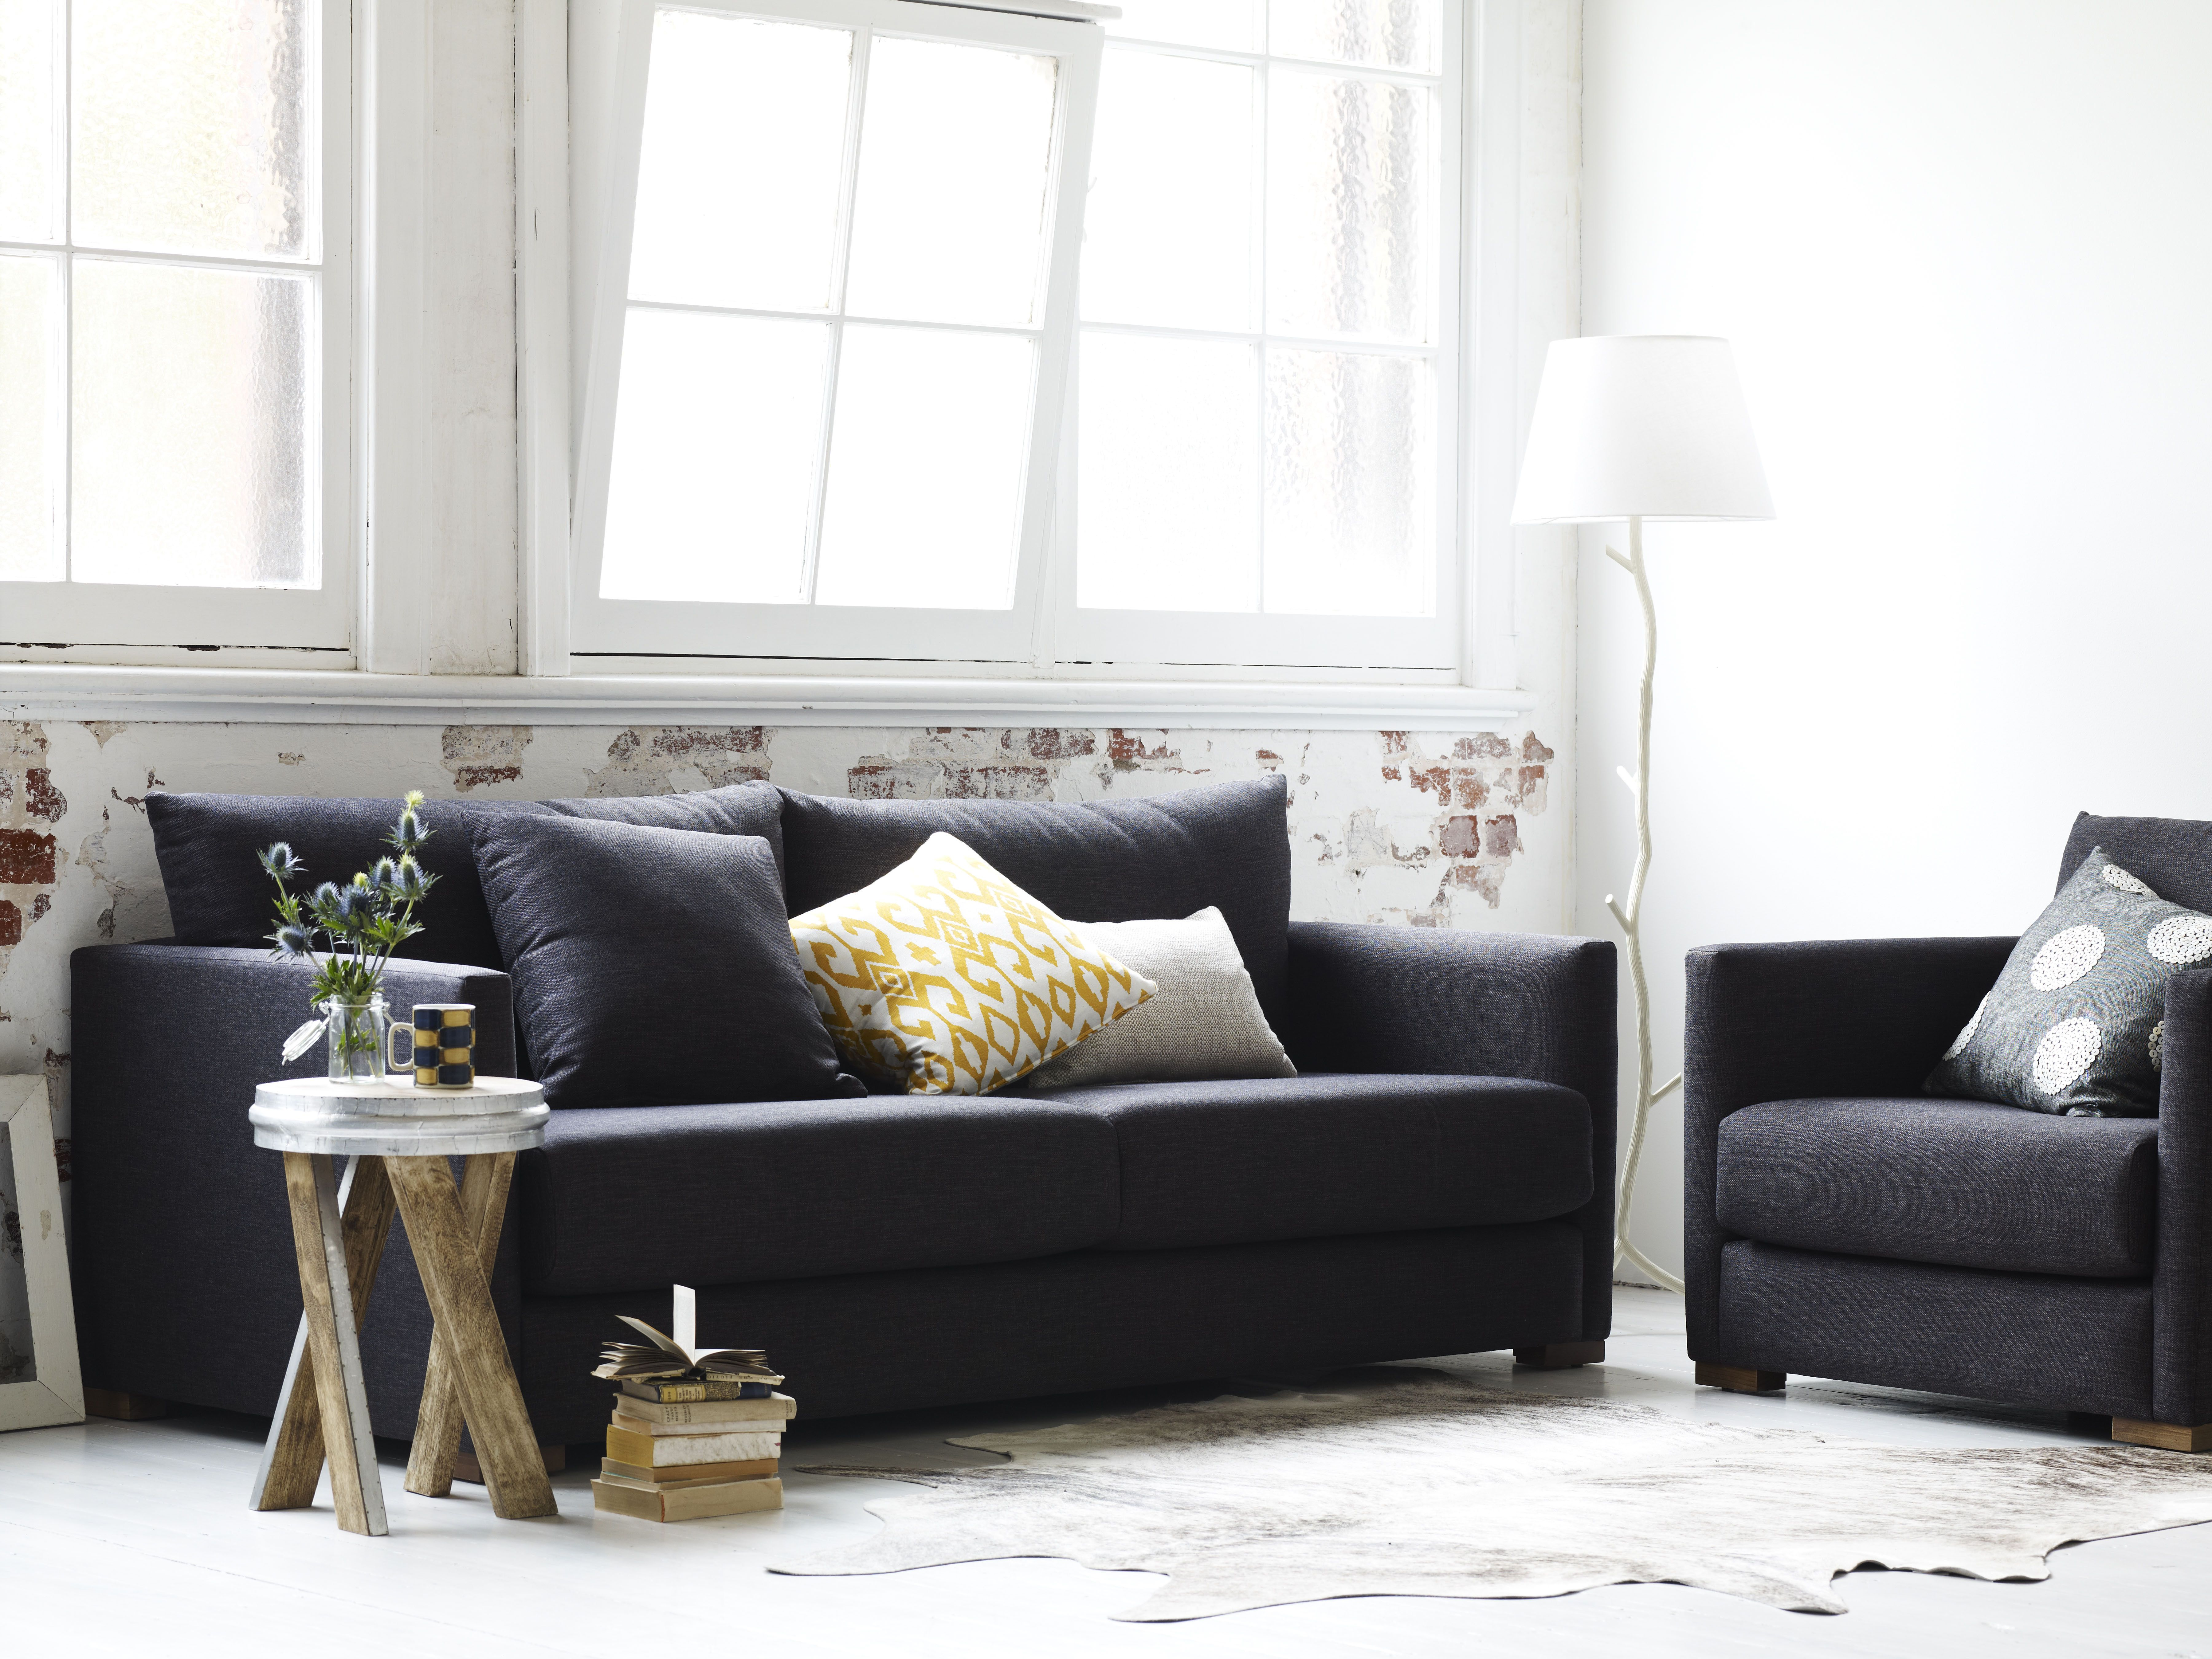 Molmic Billy Sofa and Chair lifestyle naturalsetting